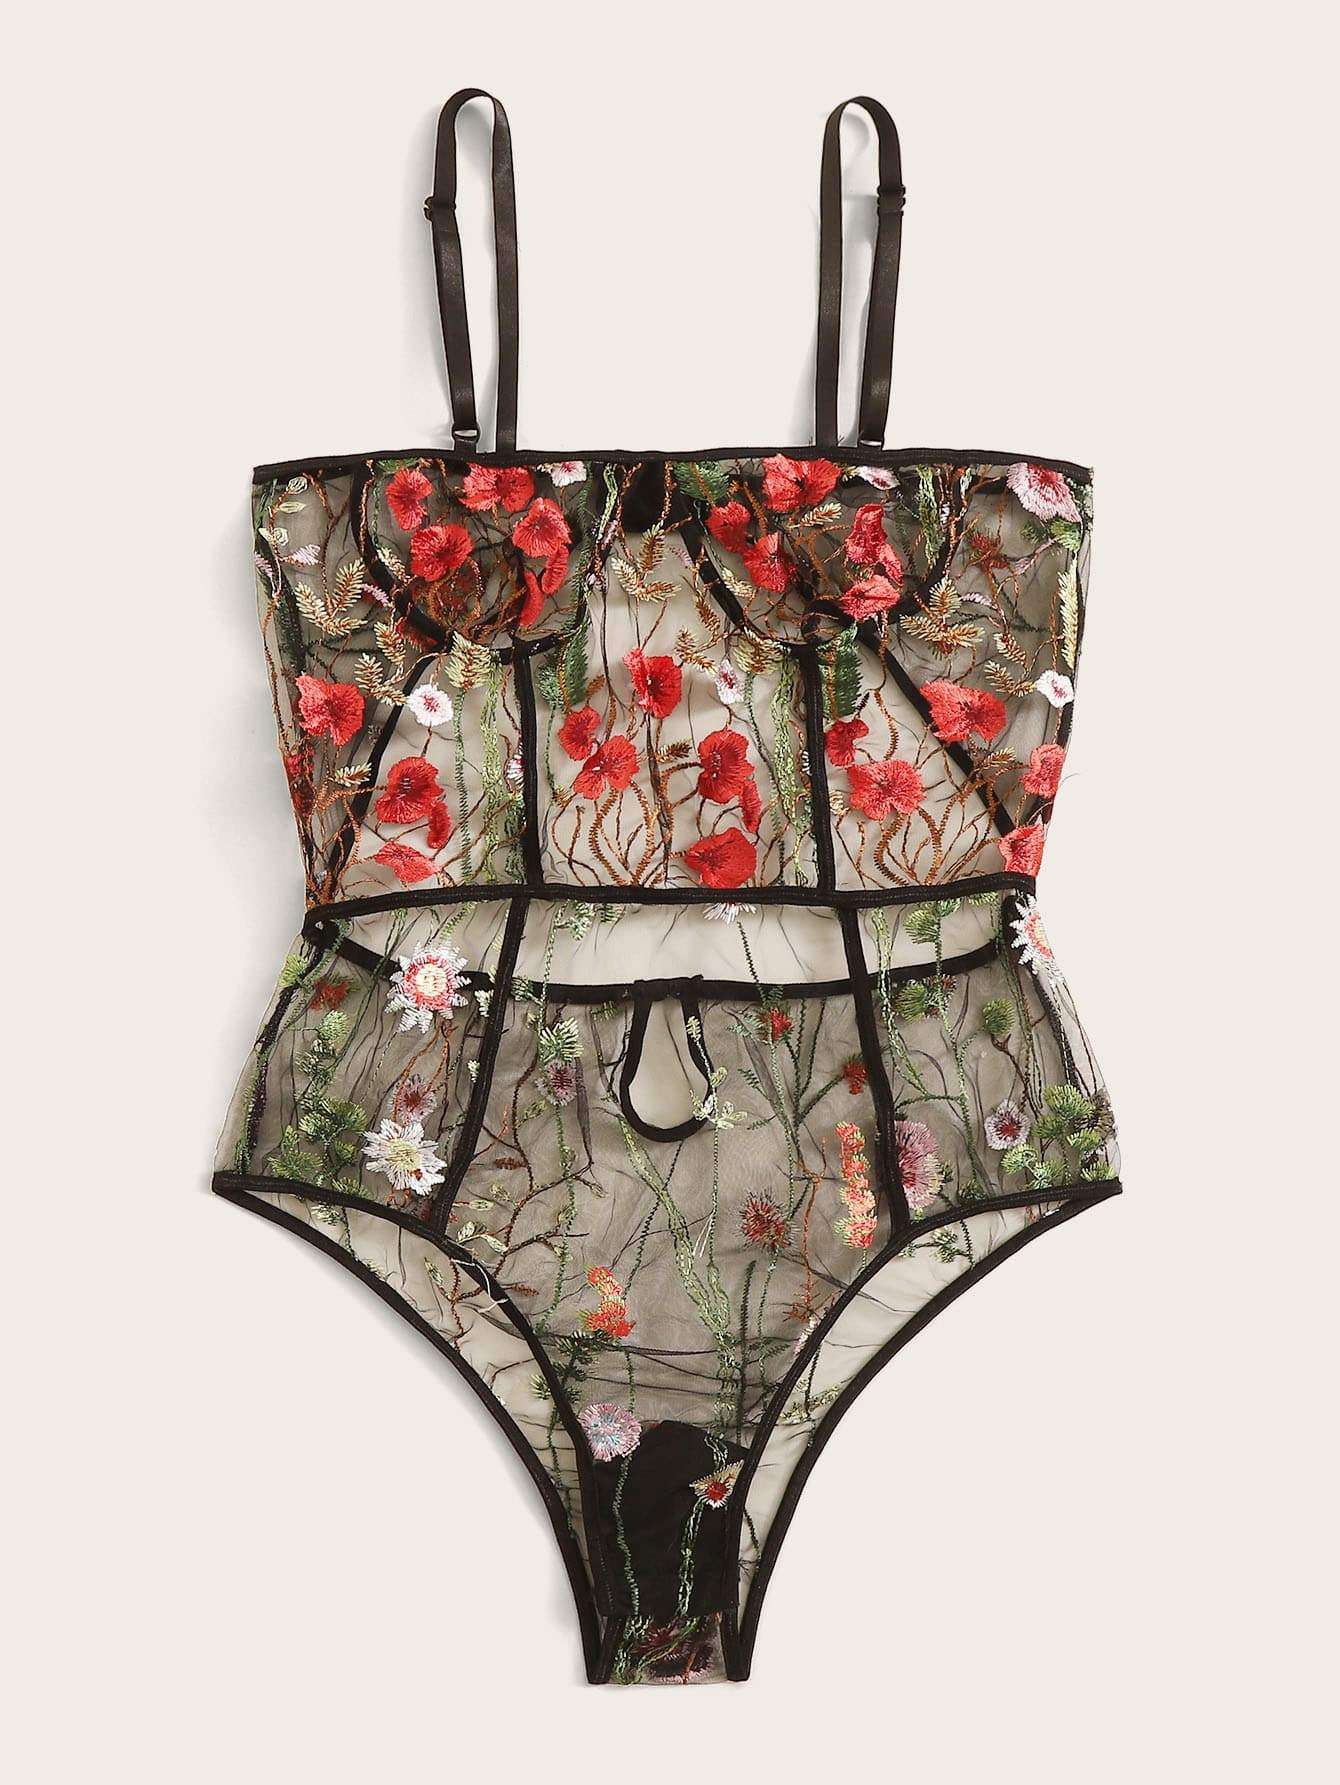 Plus Floral Embroidery Mesh Teddy Bodysuit - FLJ CORPORATIONS